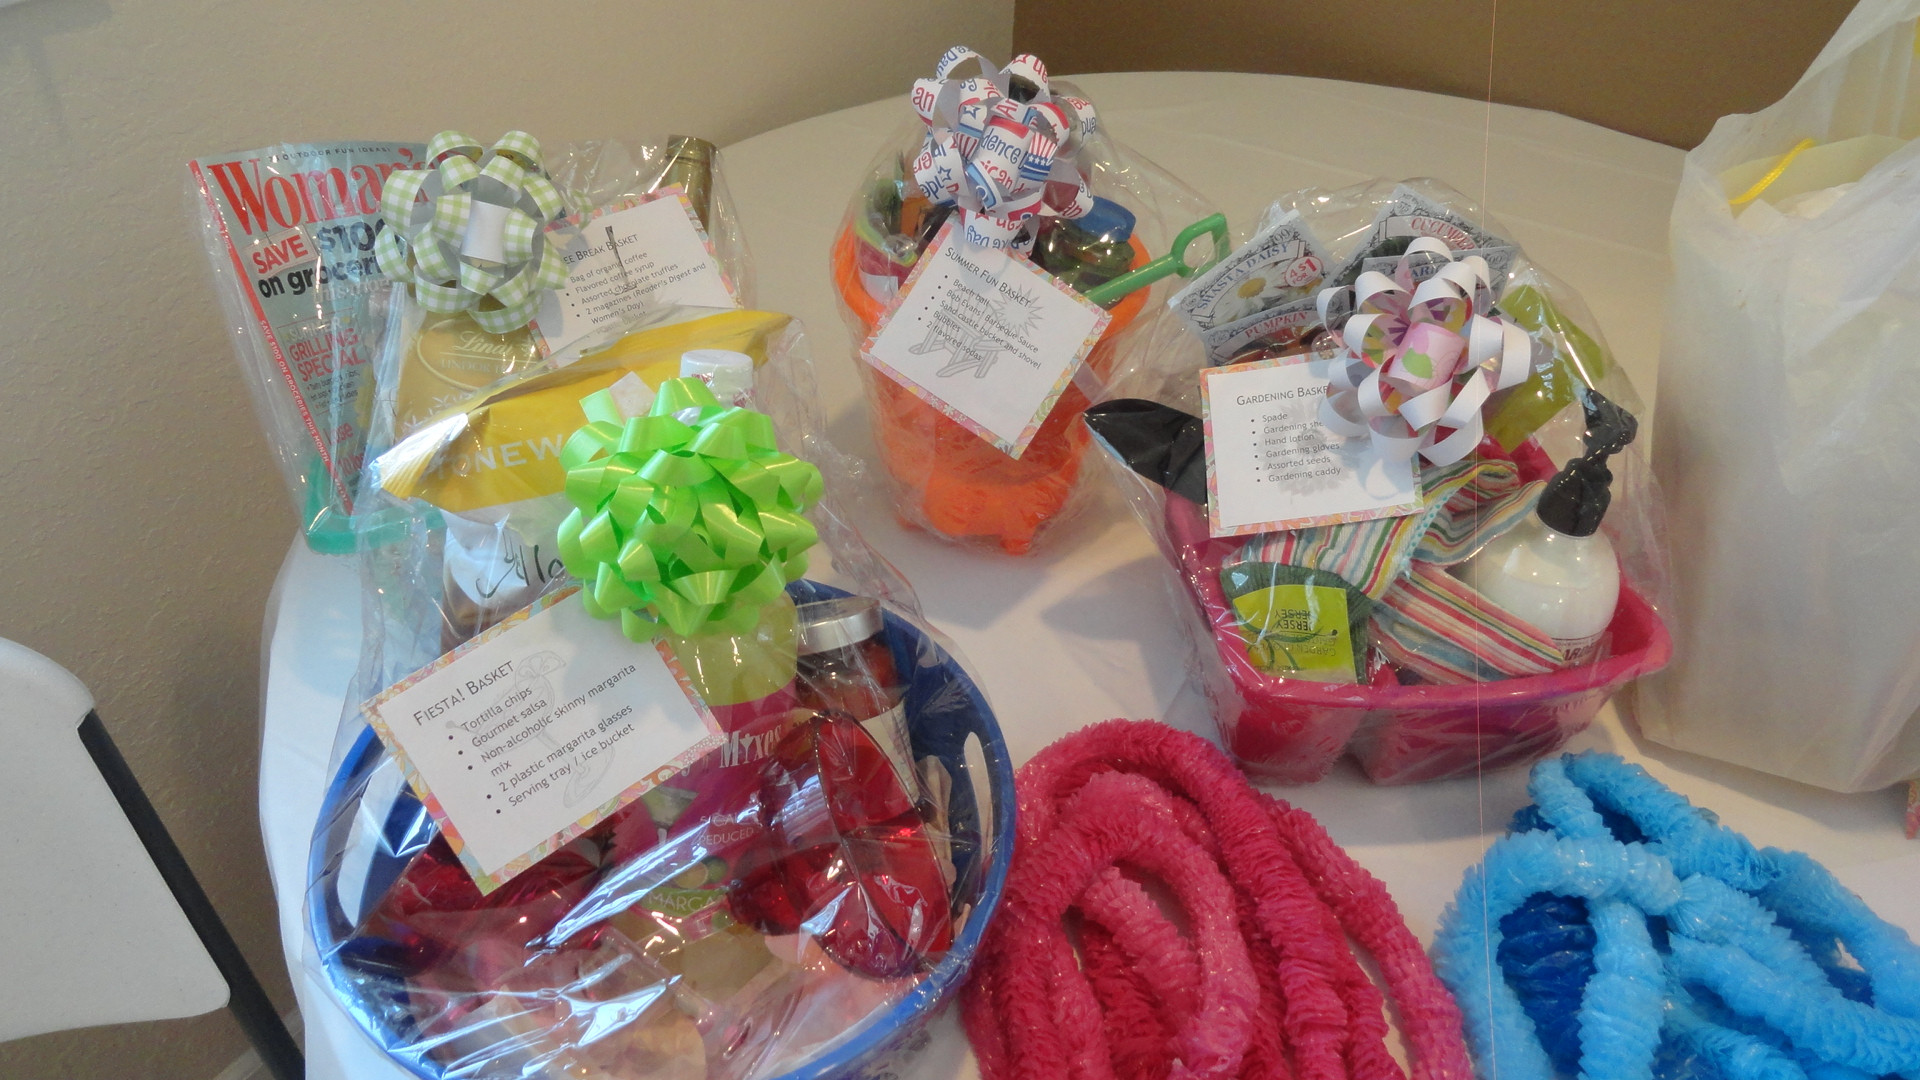 Baby Shower Gift Basket Ideas For Guests  Baby Shower Guest Gift Basket Ideas • Baby Showers Ideas